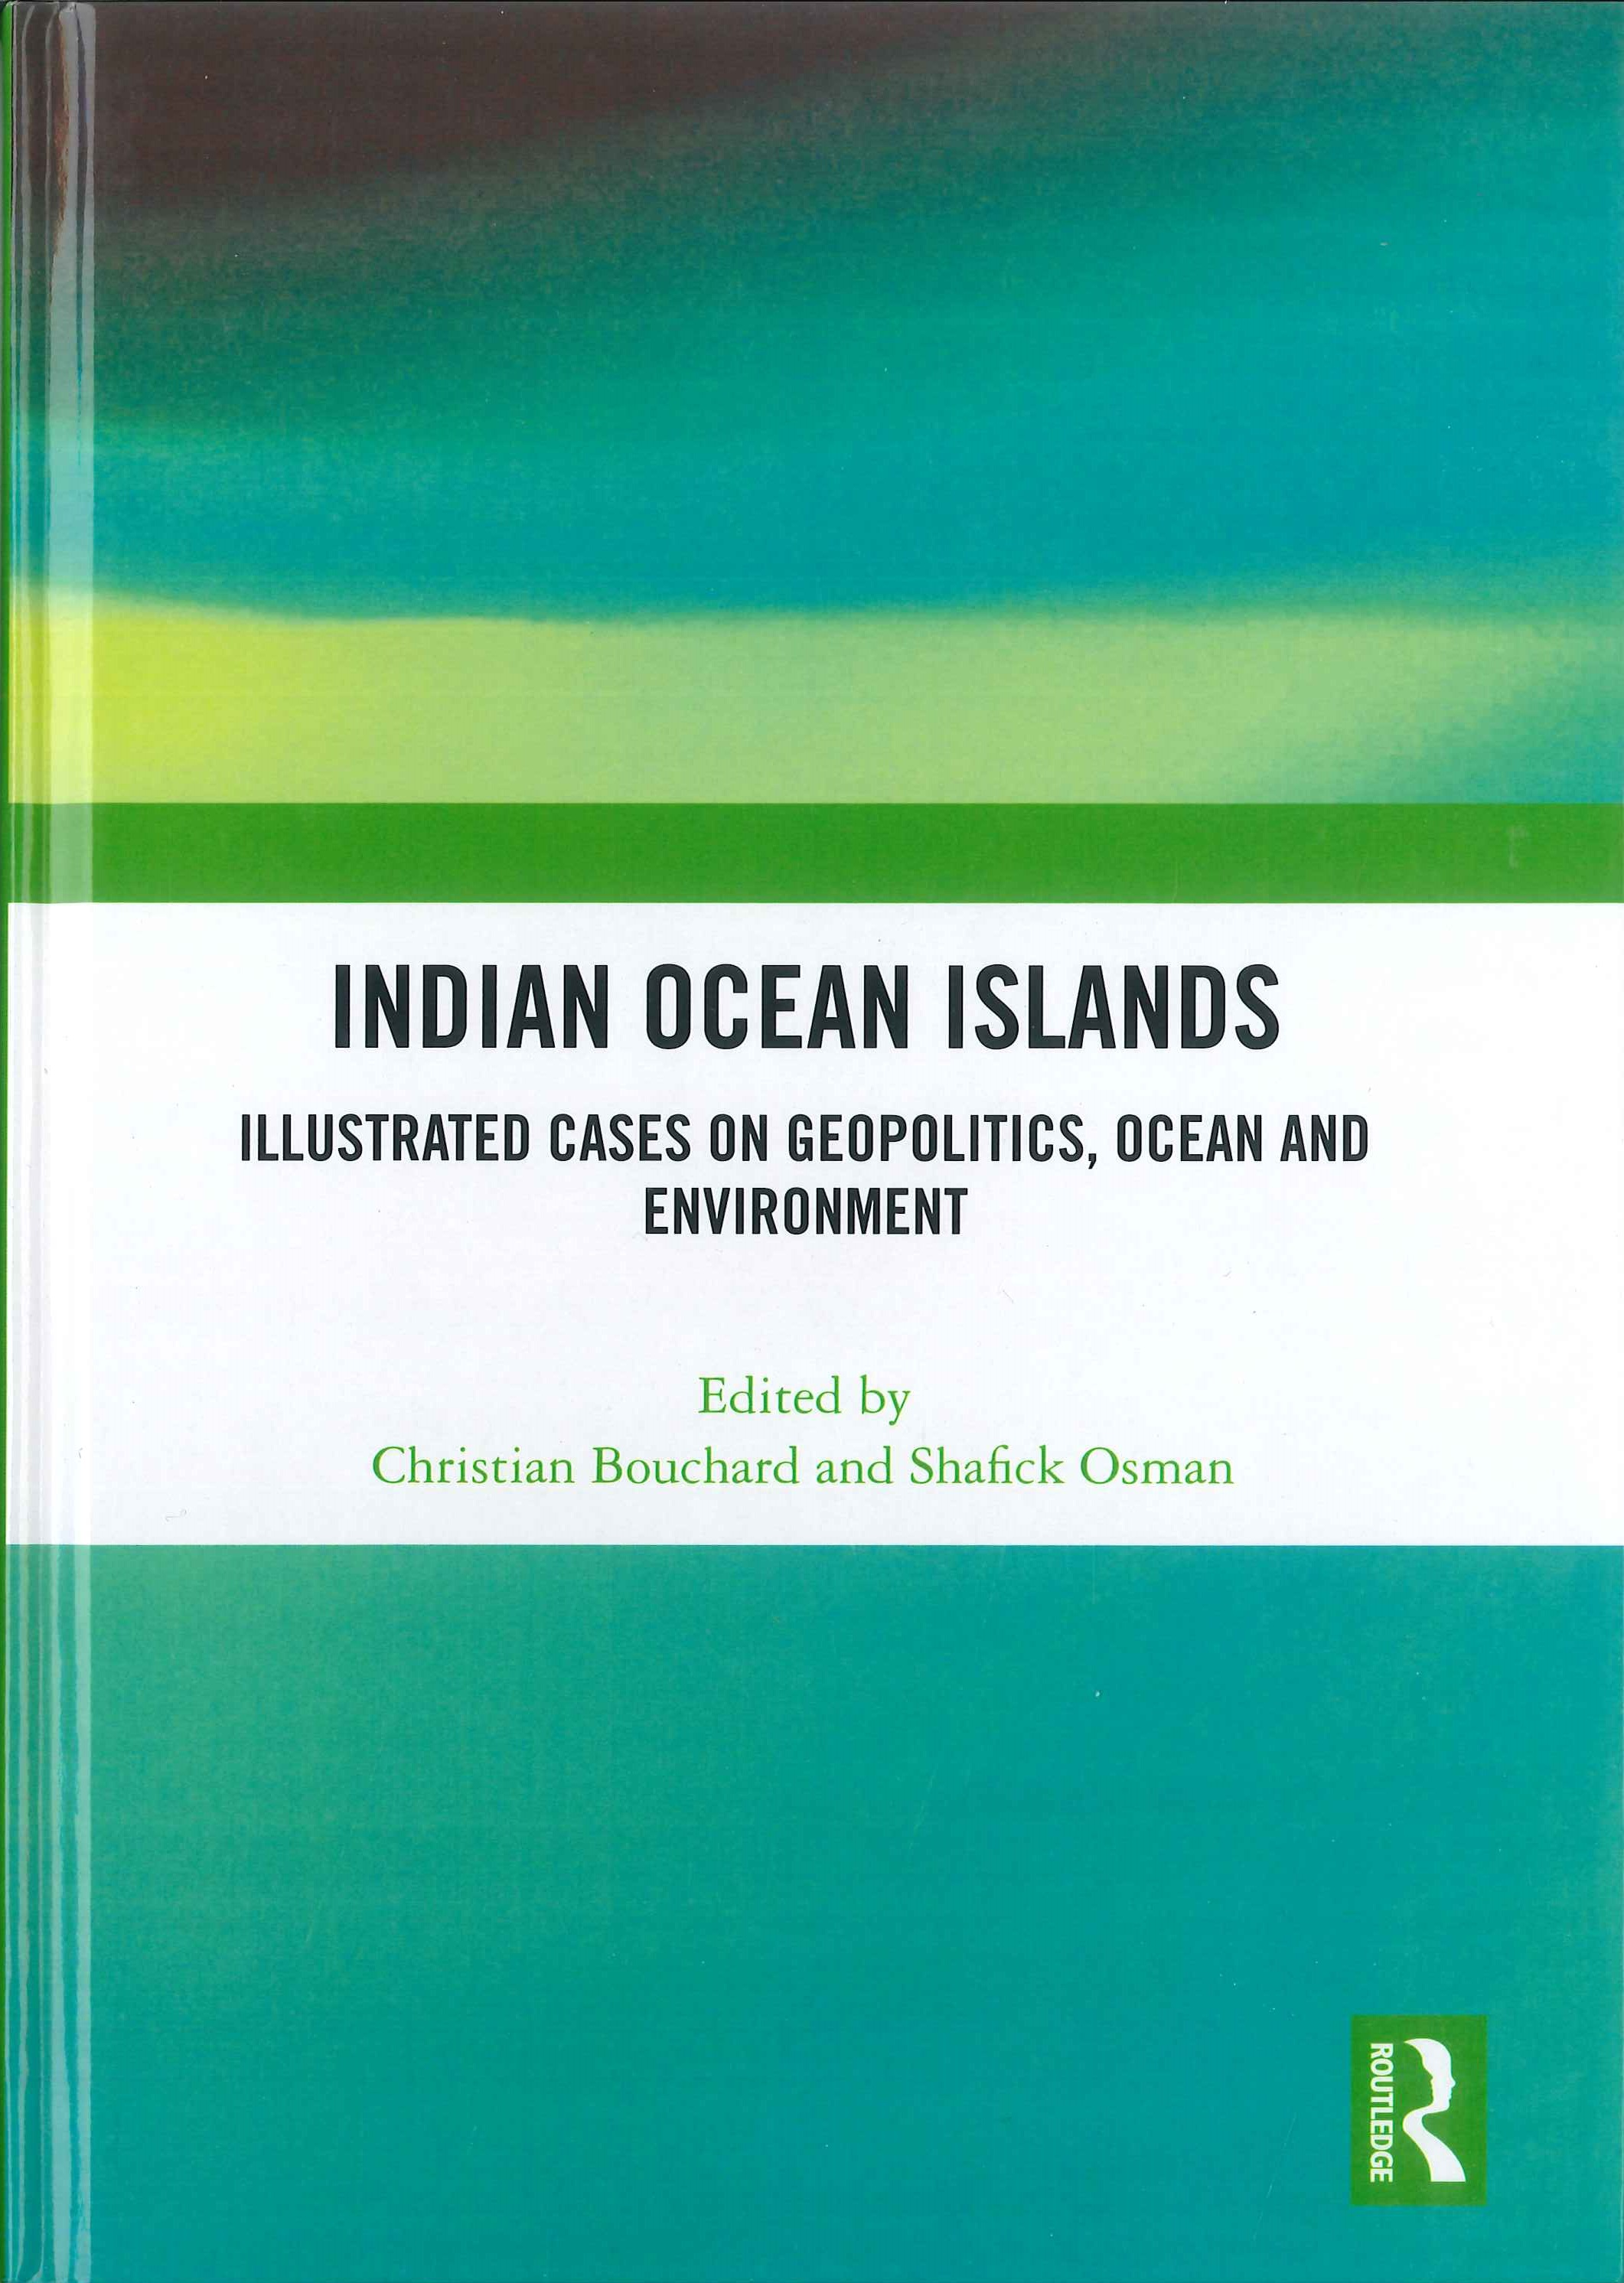 Indian ocean islands:illustrated cases on geopolitics, ocean and environment